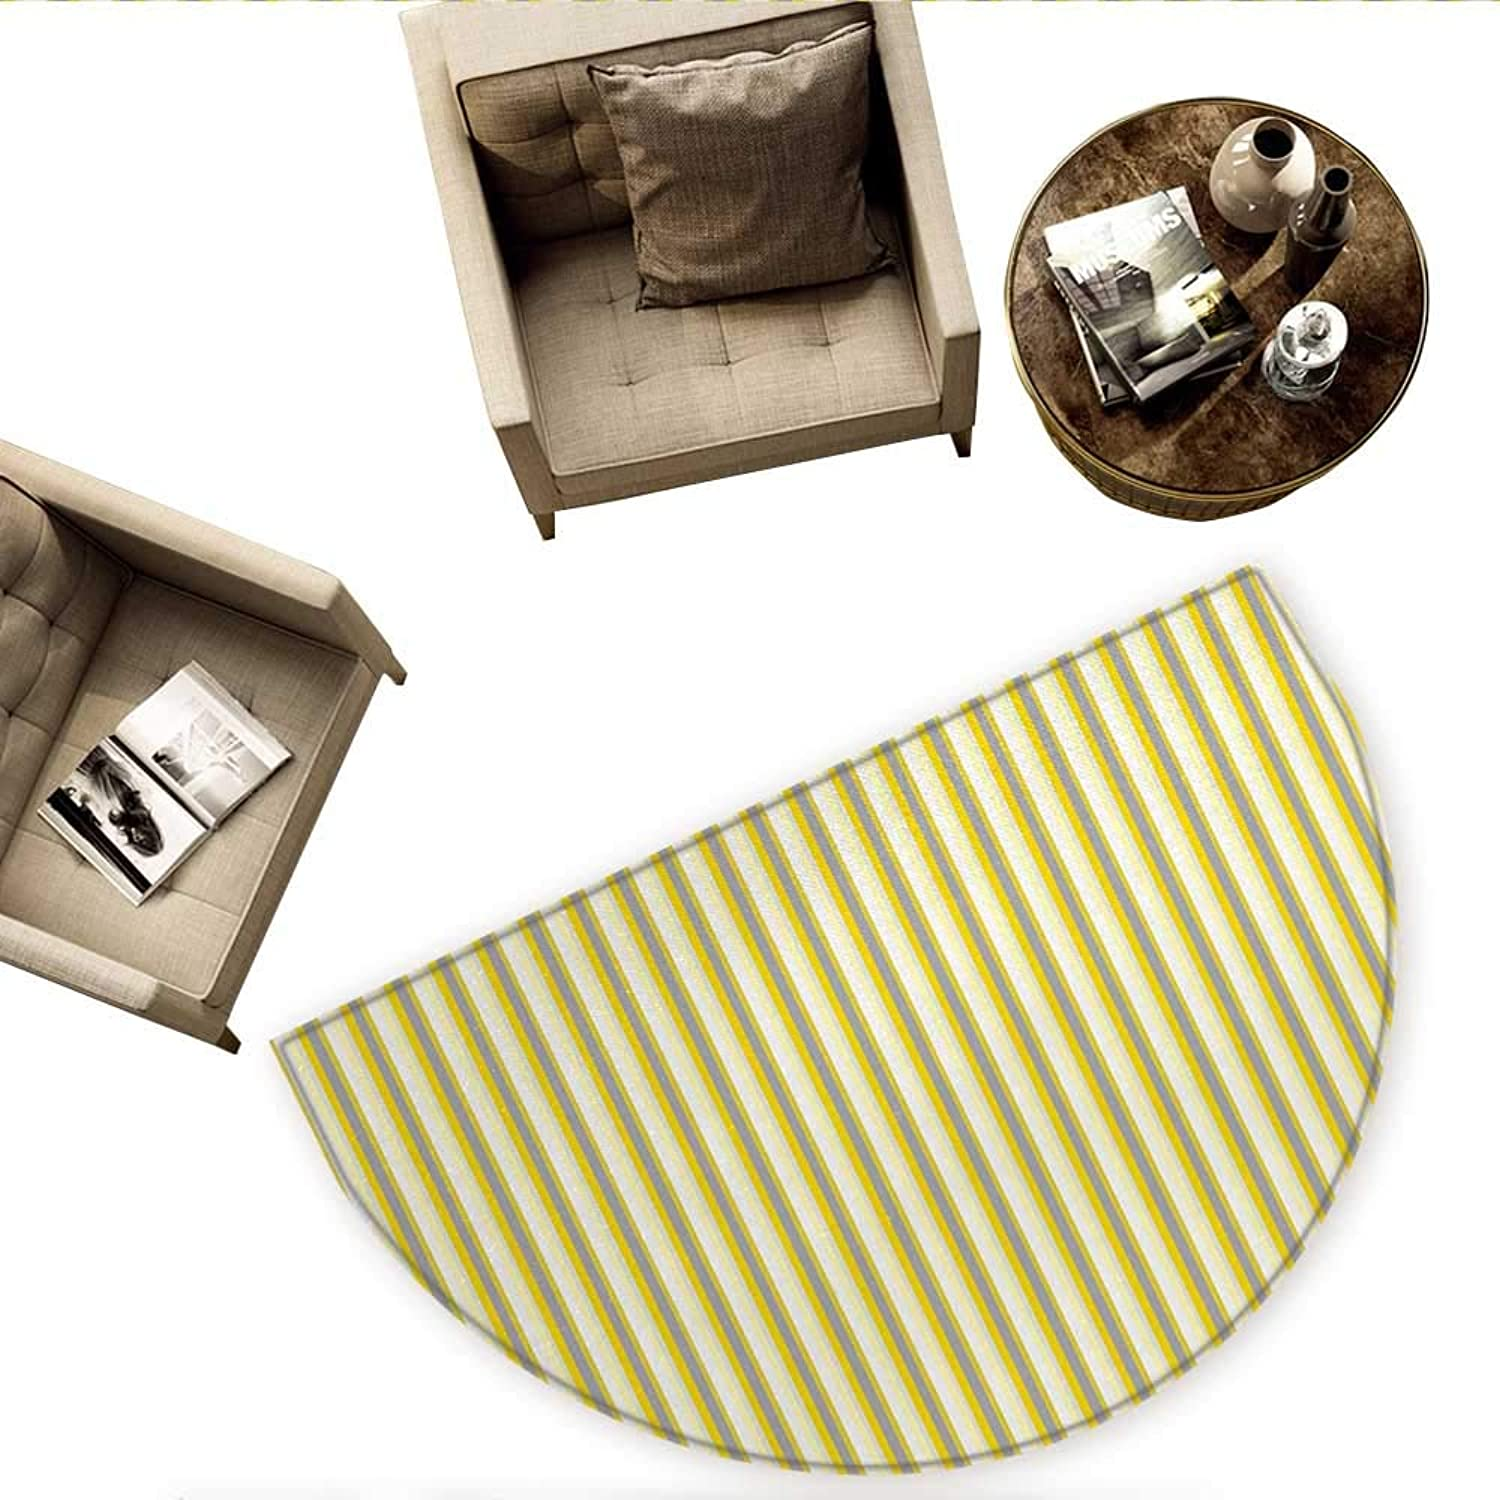 Yellow Semicircle Doormat Classical Pattern with greenical Stripes in Retro Style in Pastel colors Halfmoon doormats H 66.9  xD 100.4  Yellow Grey Coconut